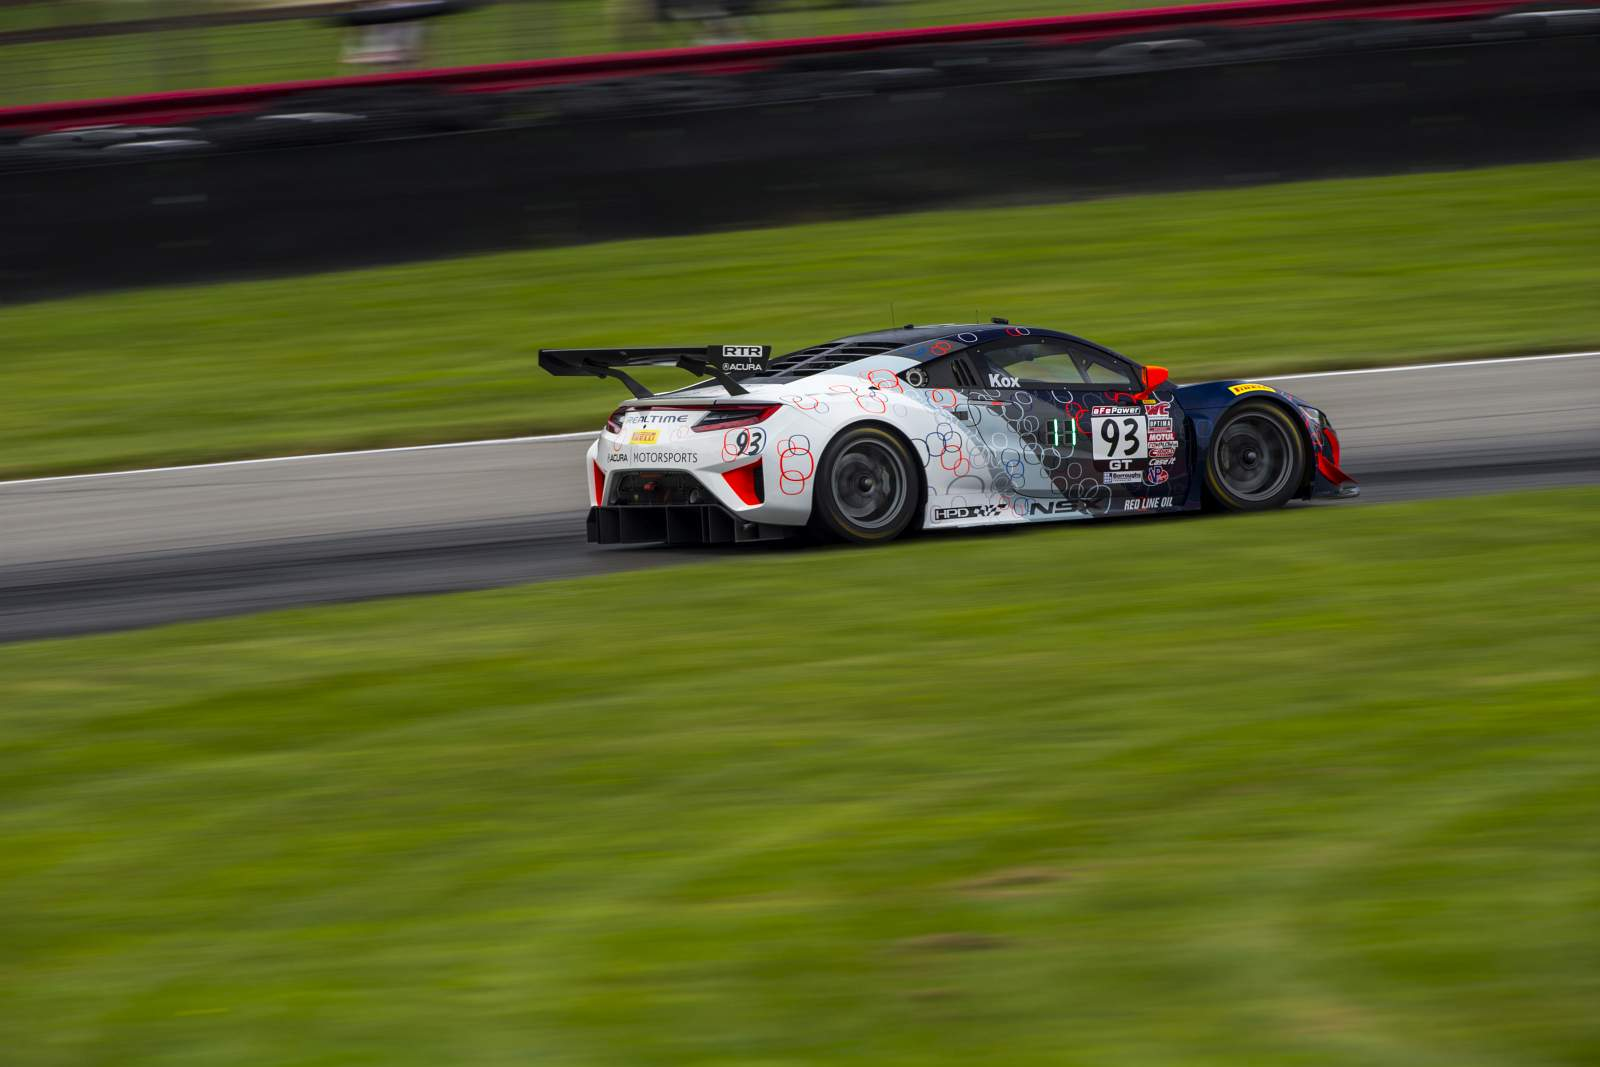 peter-kox-realtime-racing-pirelli-world-challenge-mid-ohio-06